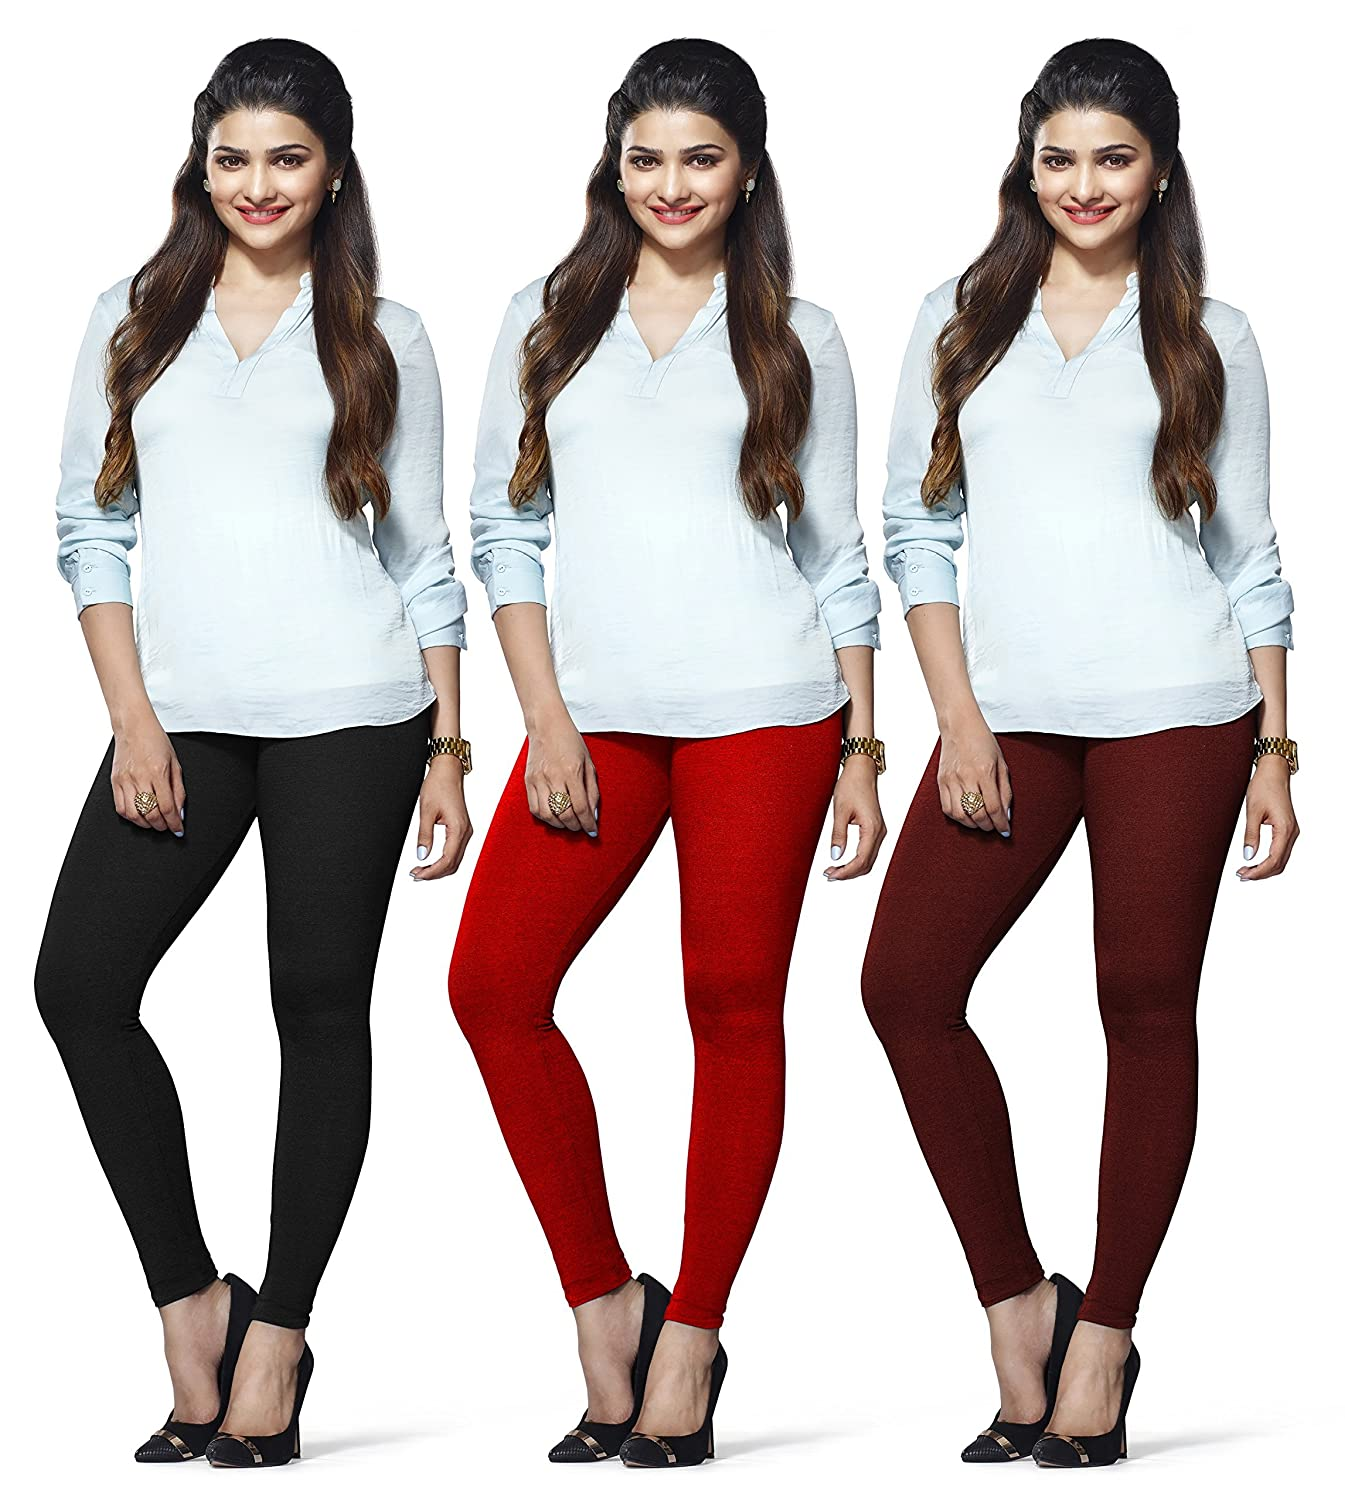 LUX LYRA Women's Ankle Length Leggings (Black, Red and Maroon,...